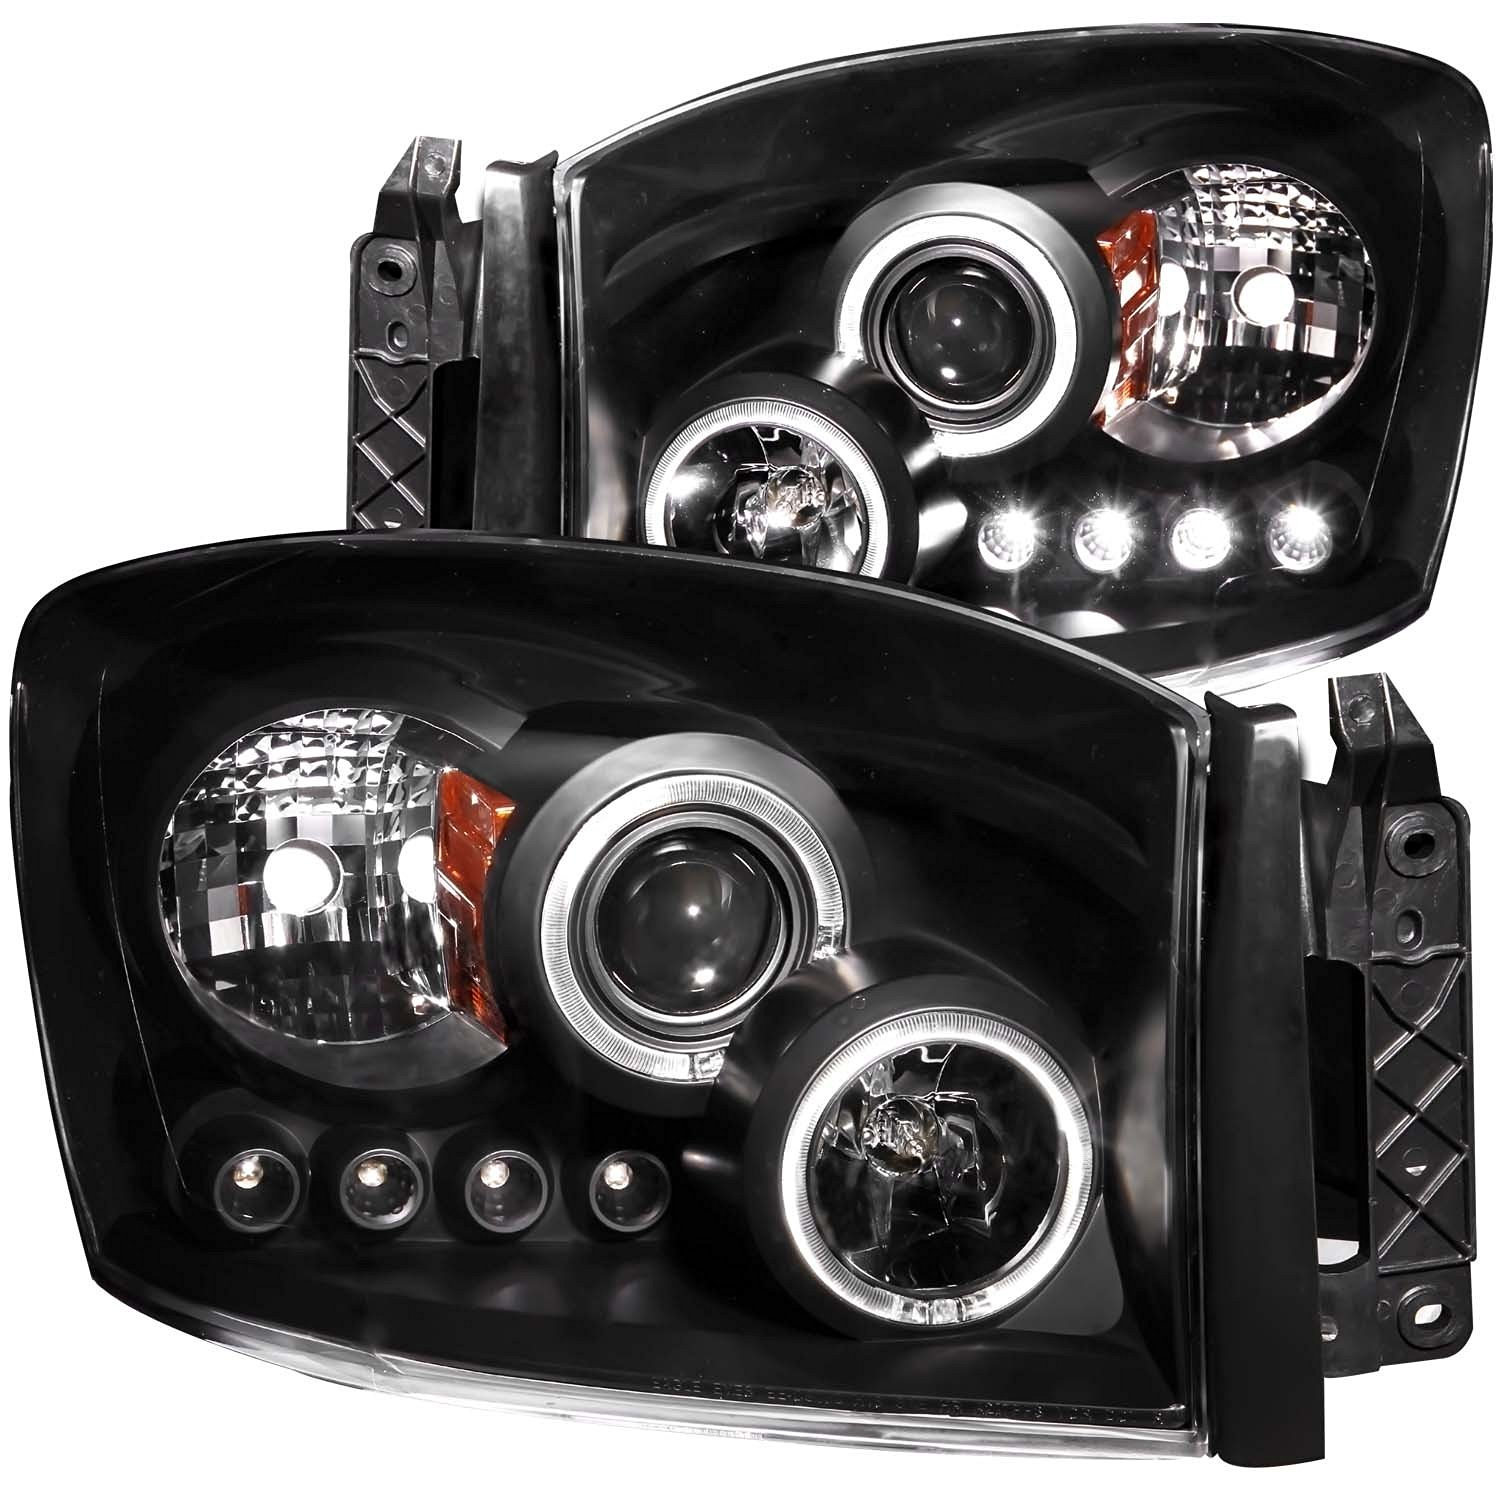 FRONT HEADLIGHT Dodge RAM 1500, Dodge RAM 2500, Dodge RAM 3500 2500/3500 2008 PROJECTOR HALO BLACK CLEAR AMBER